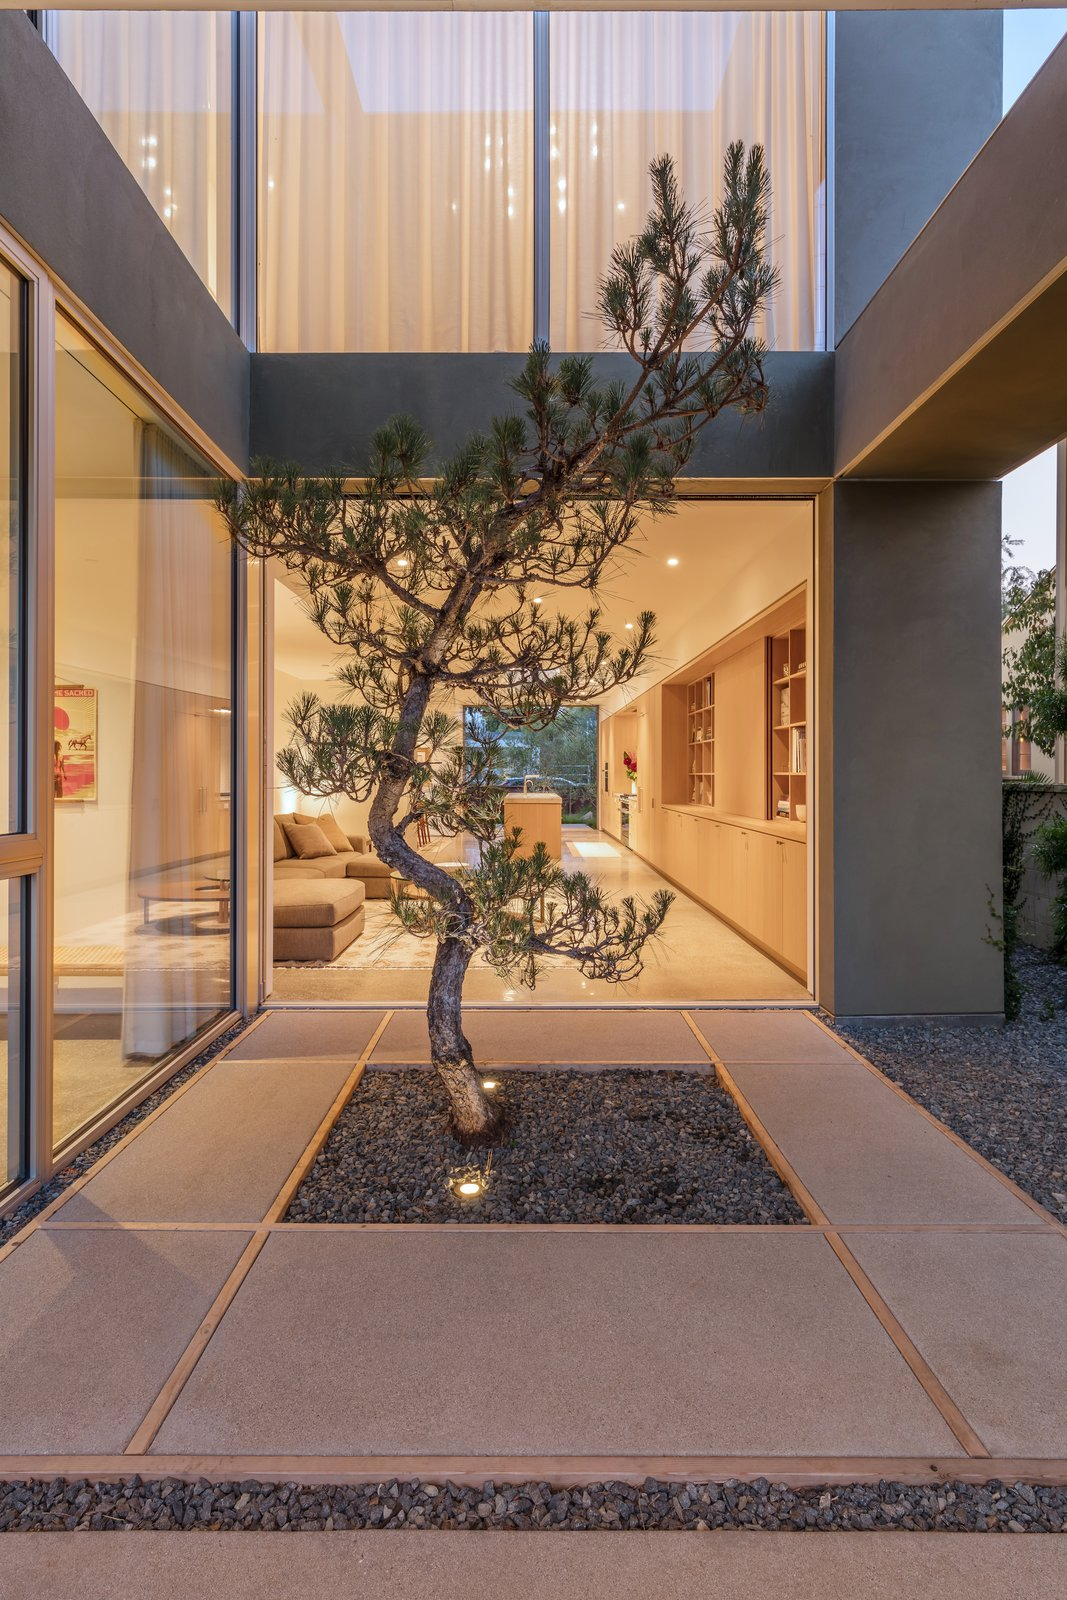 Courtyard at Culver City Case Study House by Woods + Dangaran.